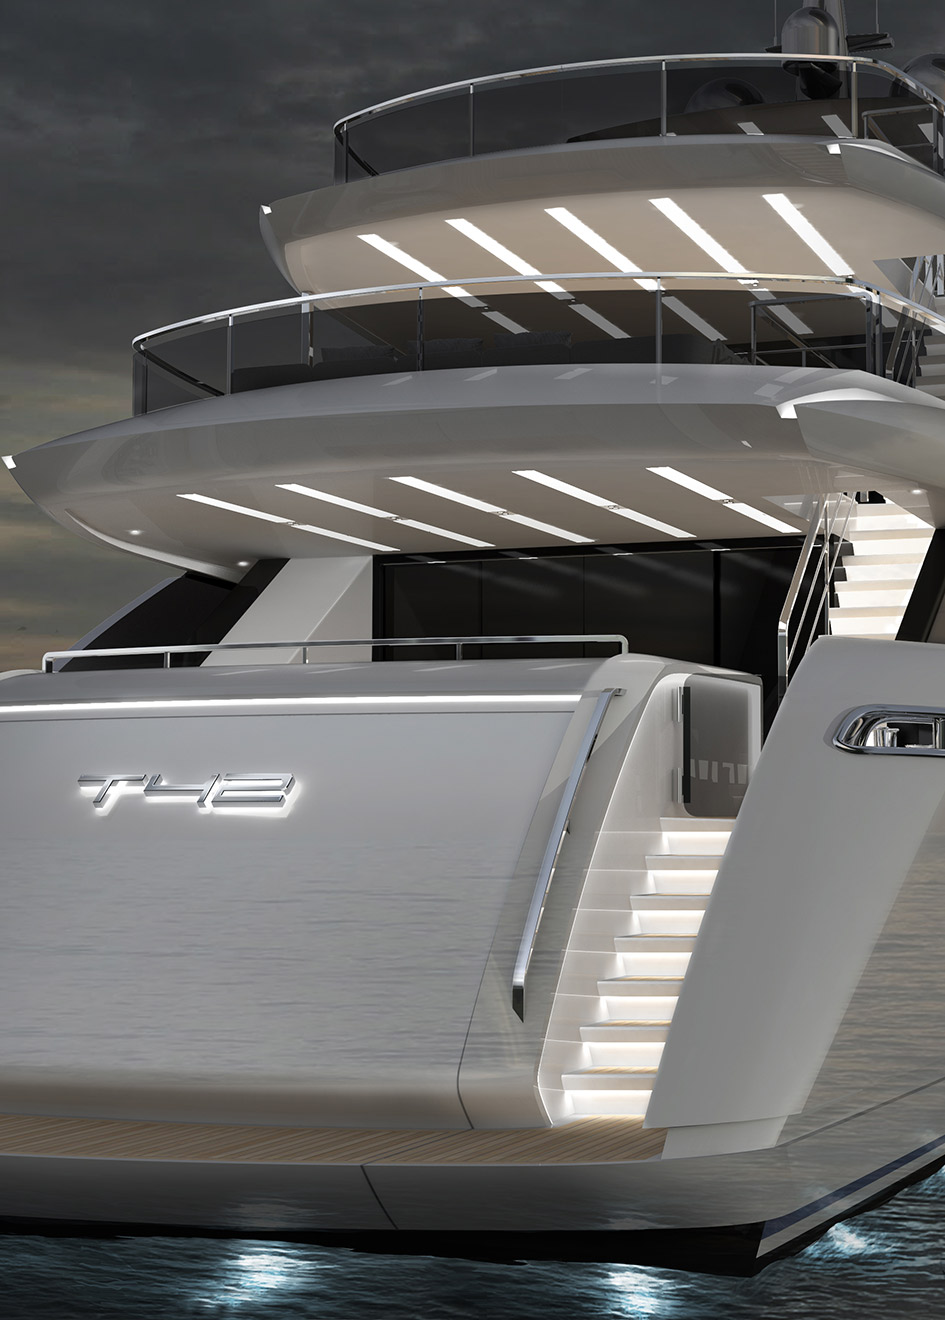 aft-view-of-the-team-for-design-Enrico-Gobbi-yacht-concept-t42